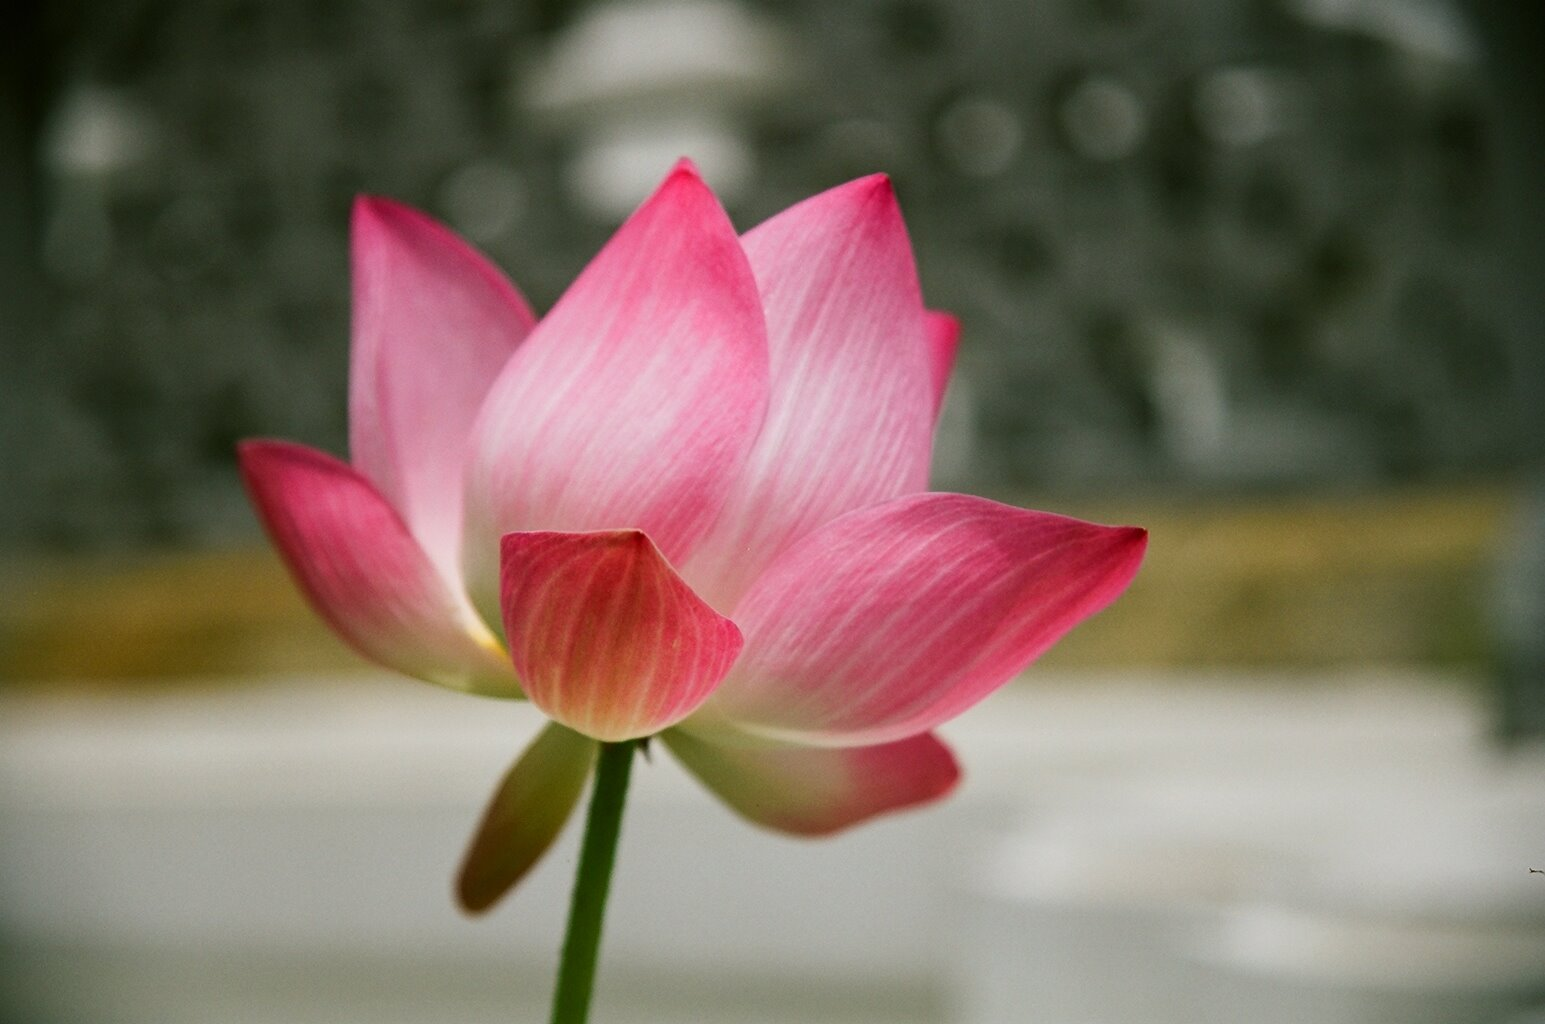 Media Lotus Flower Wallpapers High Quality And Wide Screen